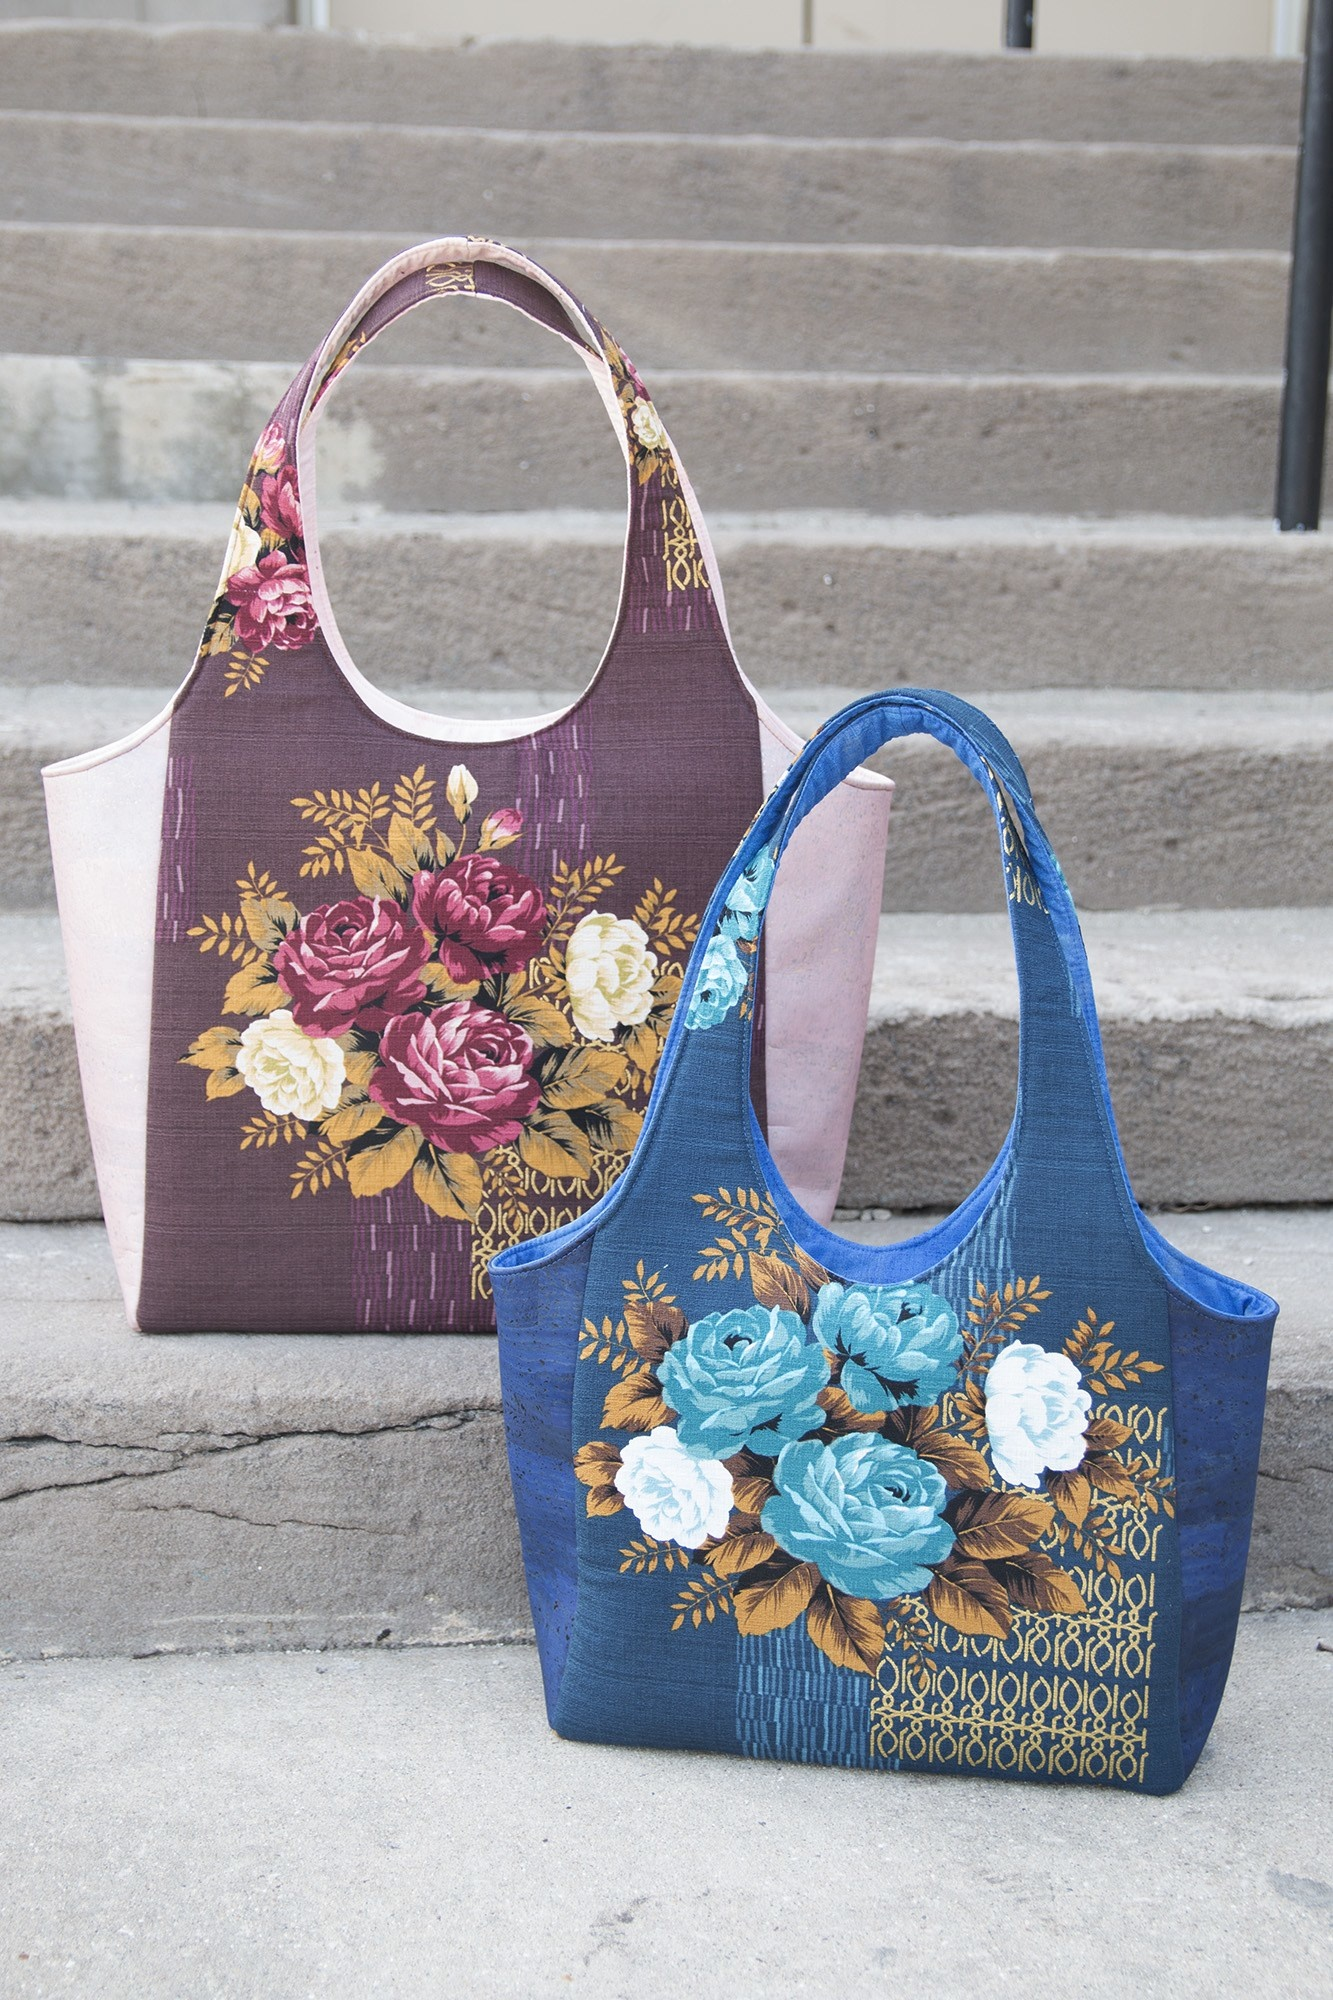 Clydebank Tote from Sew Sweetness